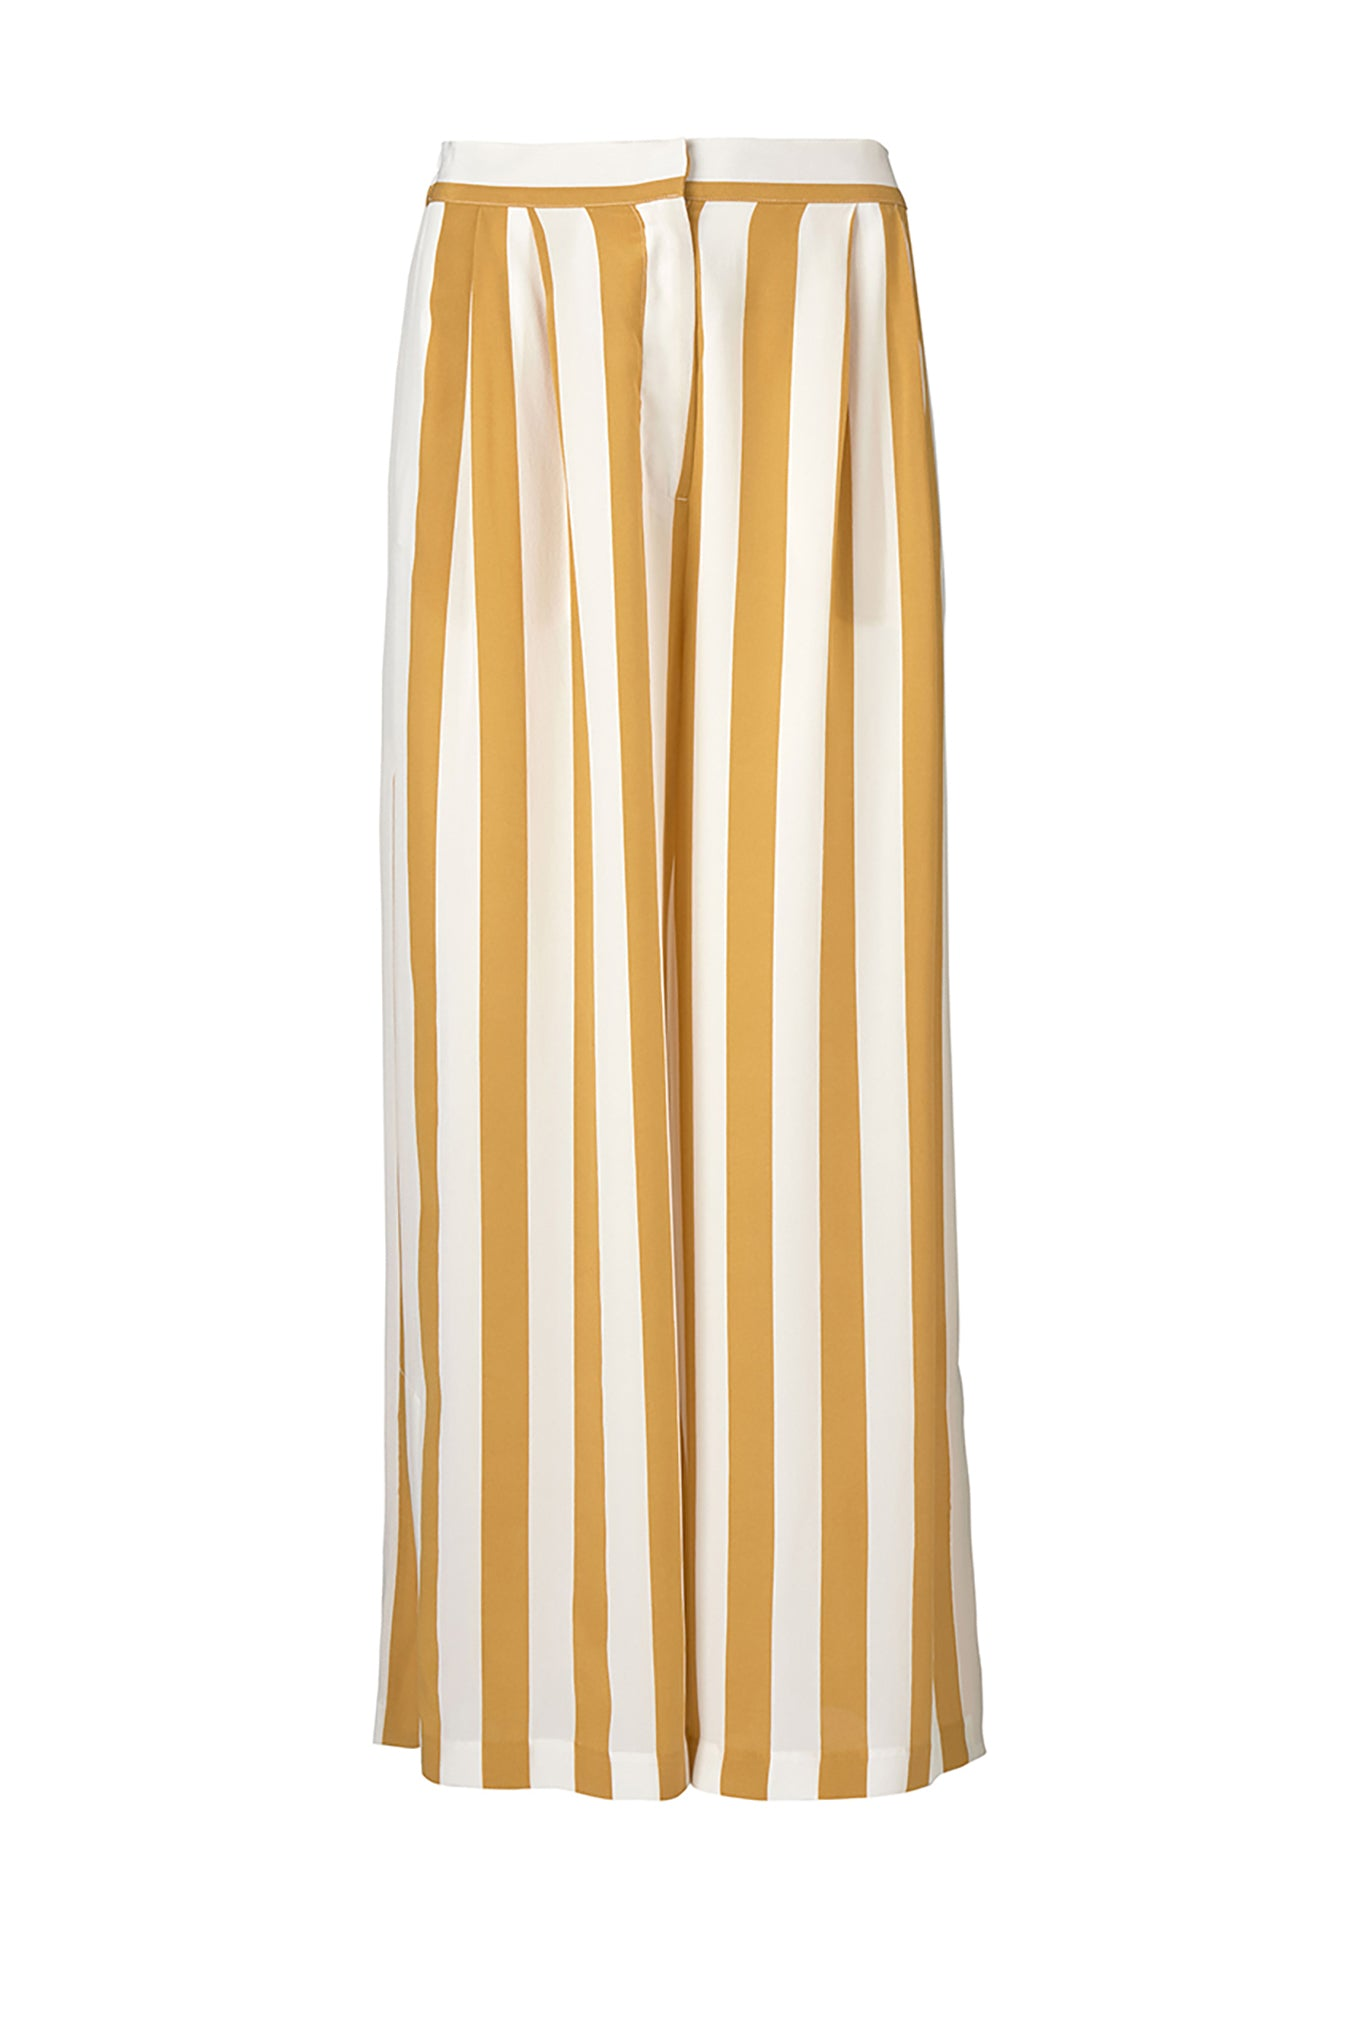 CECCO SLIT PANTS - HONEY/WHITE STRIPE